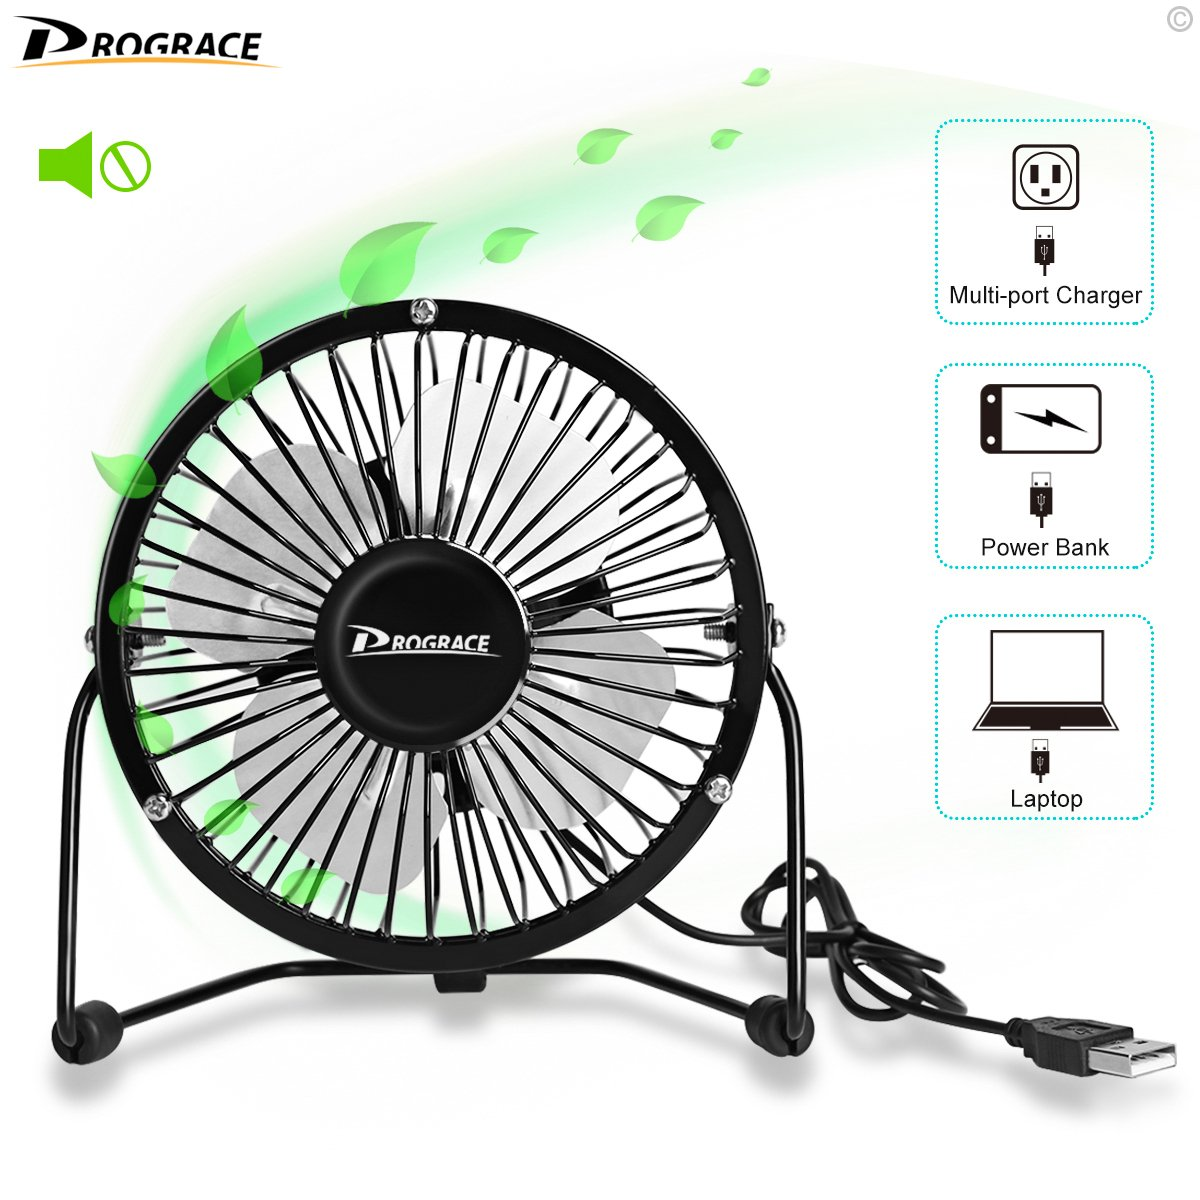 Drograce 4 Inch Mini USB Fan, Office Table Desk Personal USB Powered Fans Durable Metal Design 360 Degree Rotate Quiet Small Air Cooler Fan (Black)